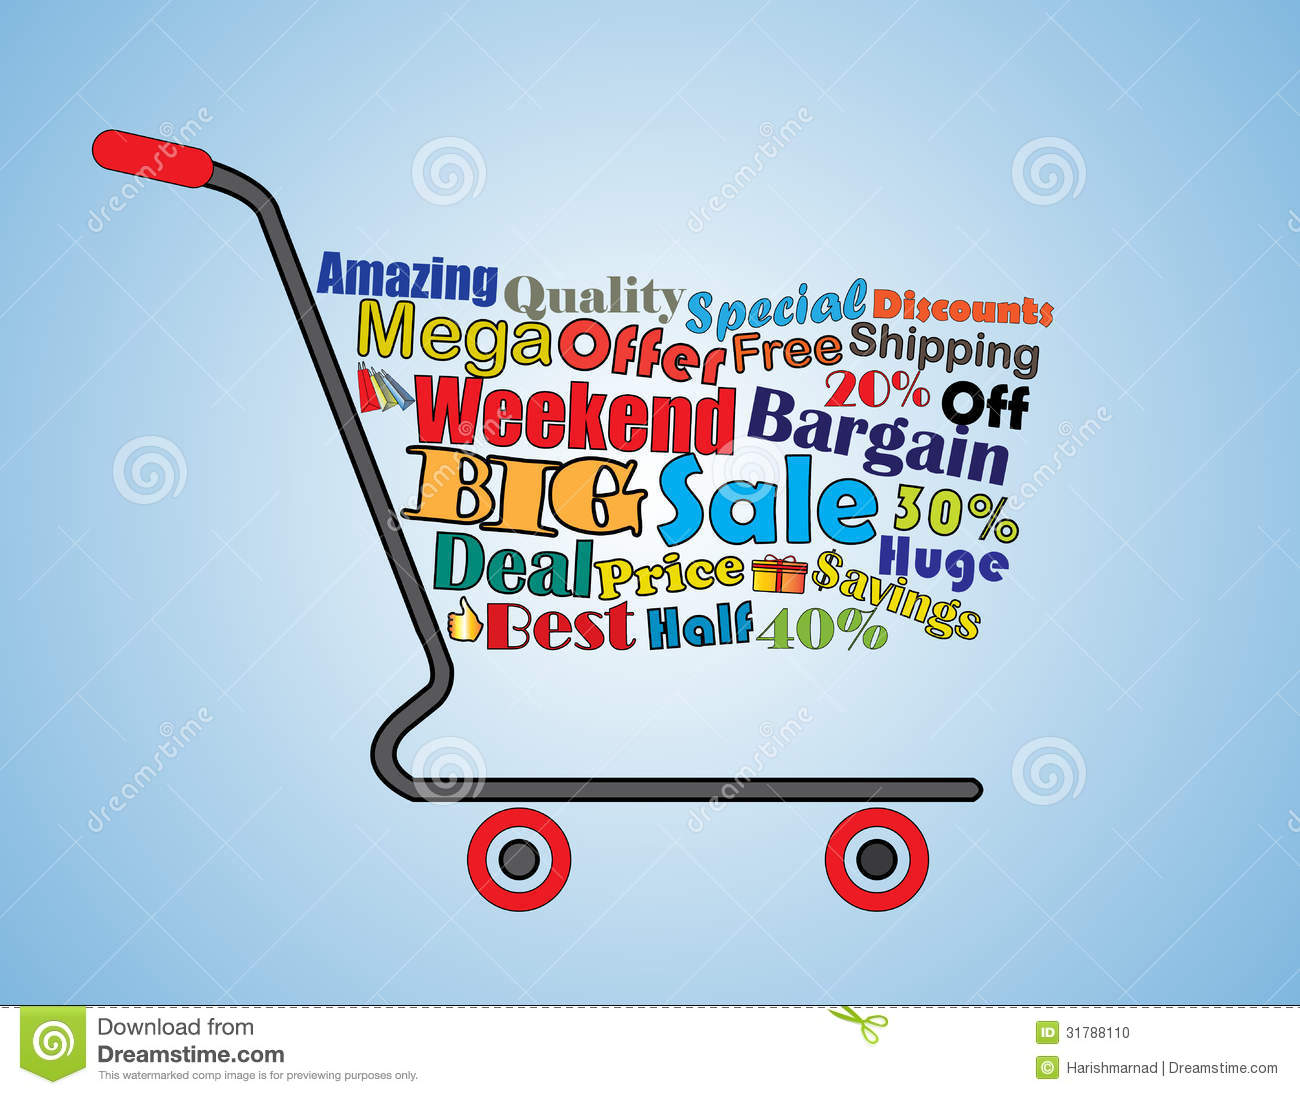 Big Sales This Weekend: Mega Or Big Weekend Sale Shopping Cart Banner Stock